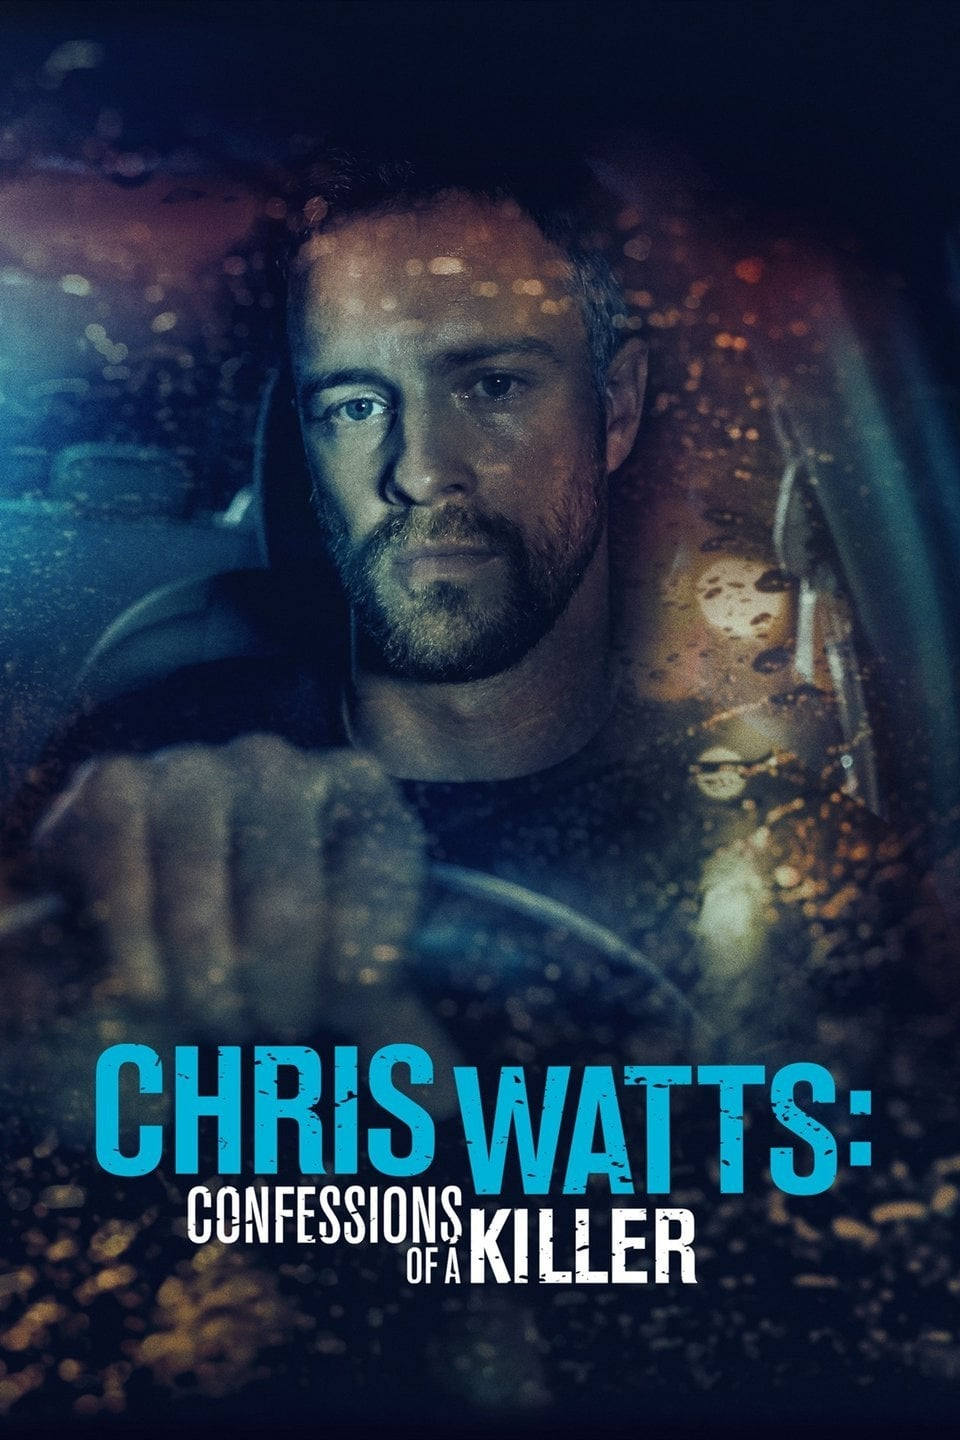 Chris Watts Confessions Of A Killer (2020) Hindi Dual Audio 480p HDTV x264 350MB